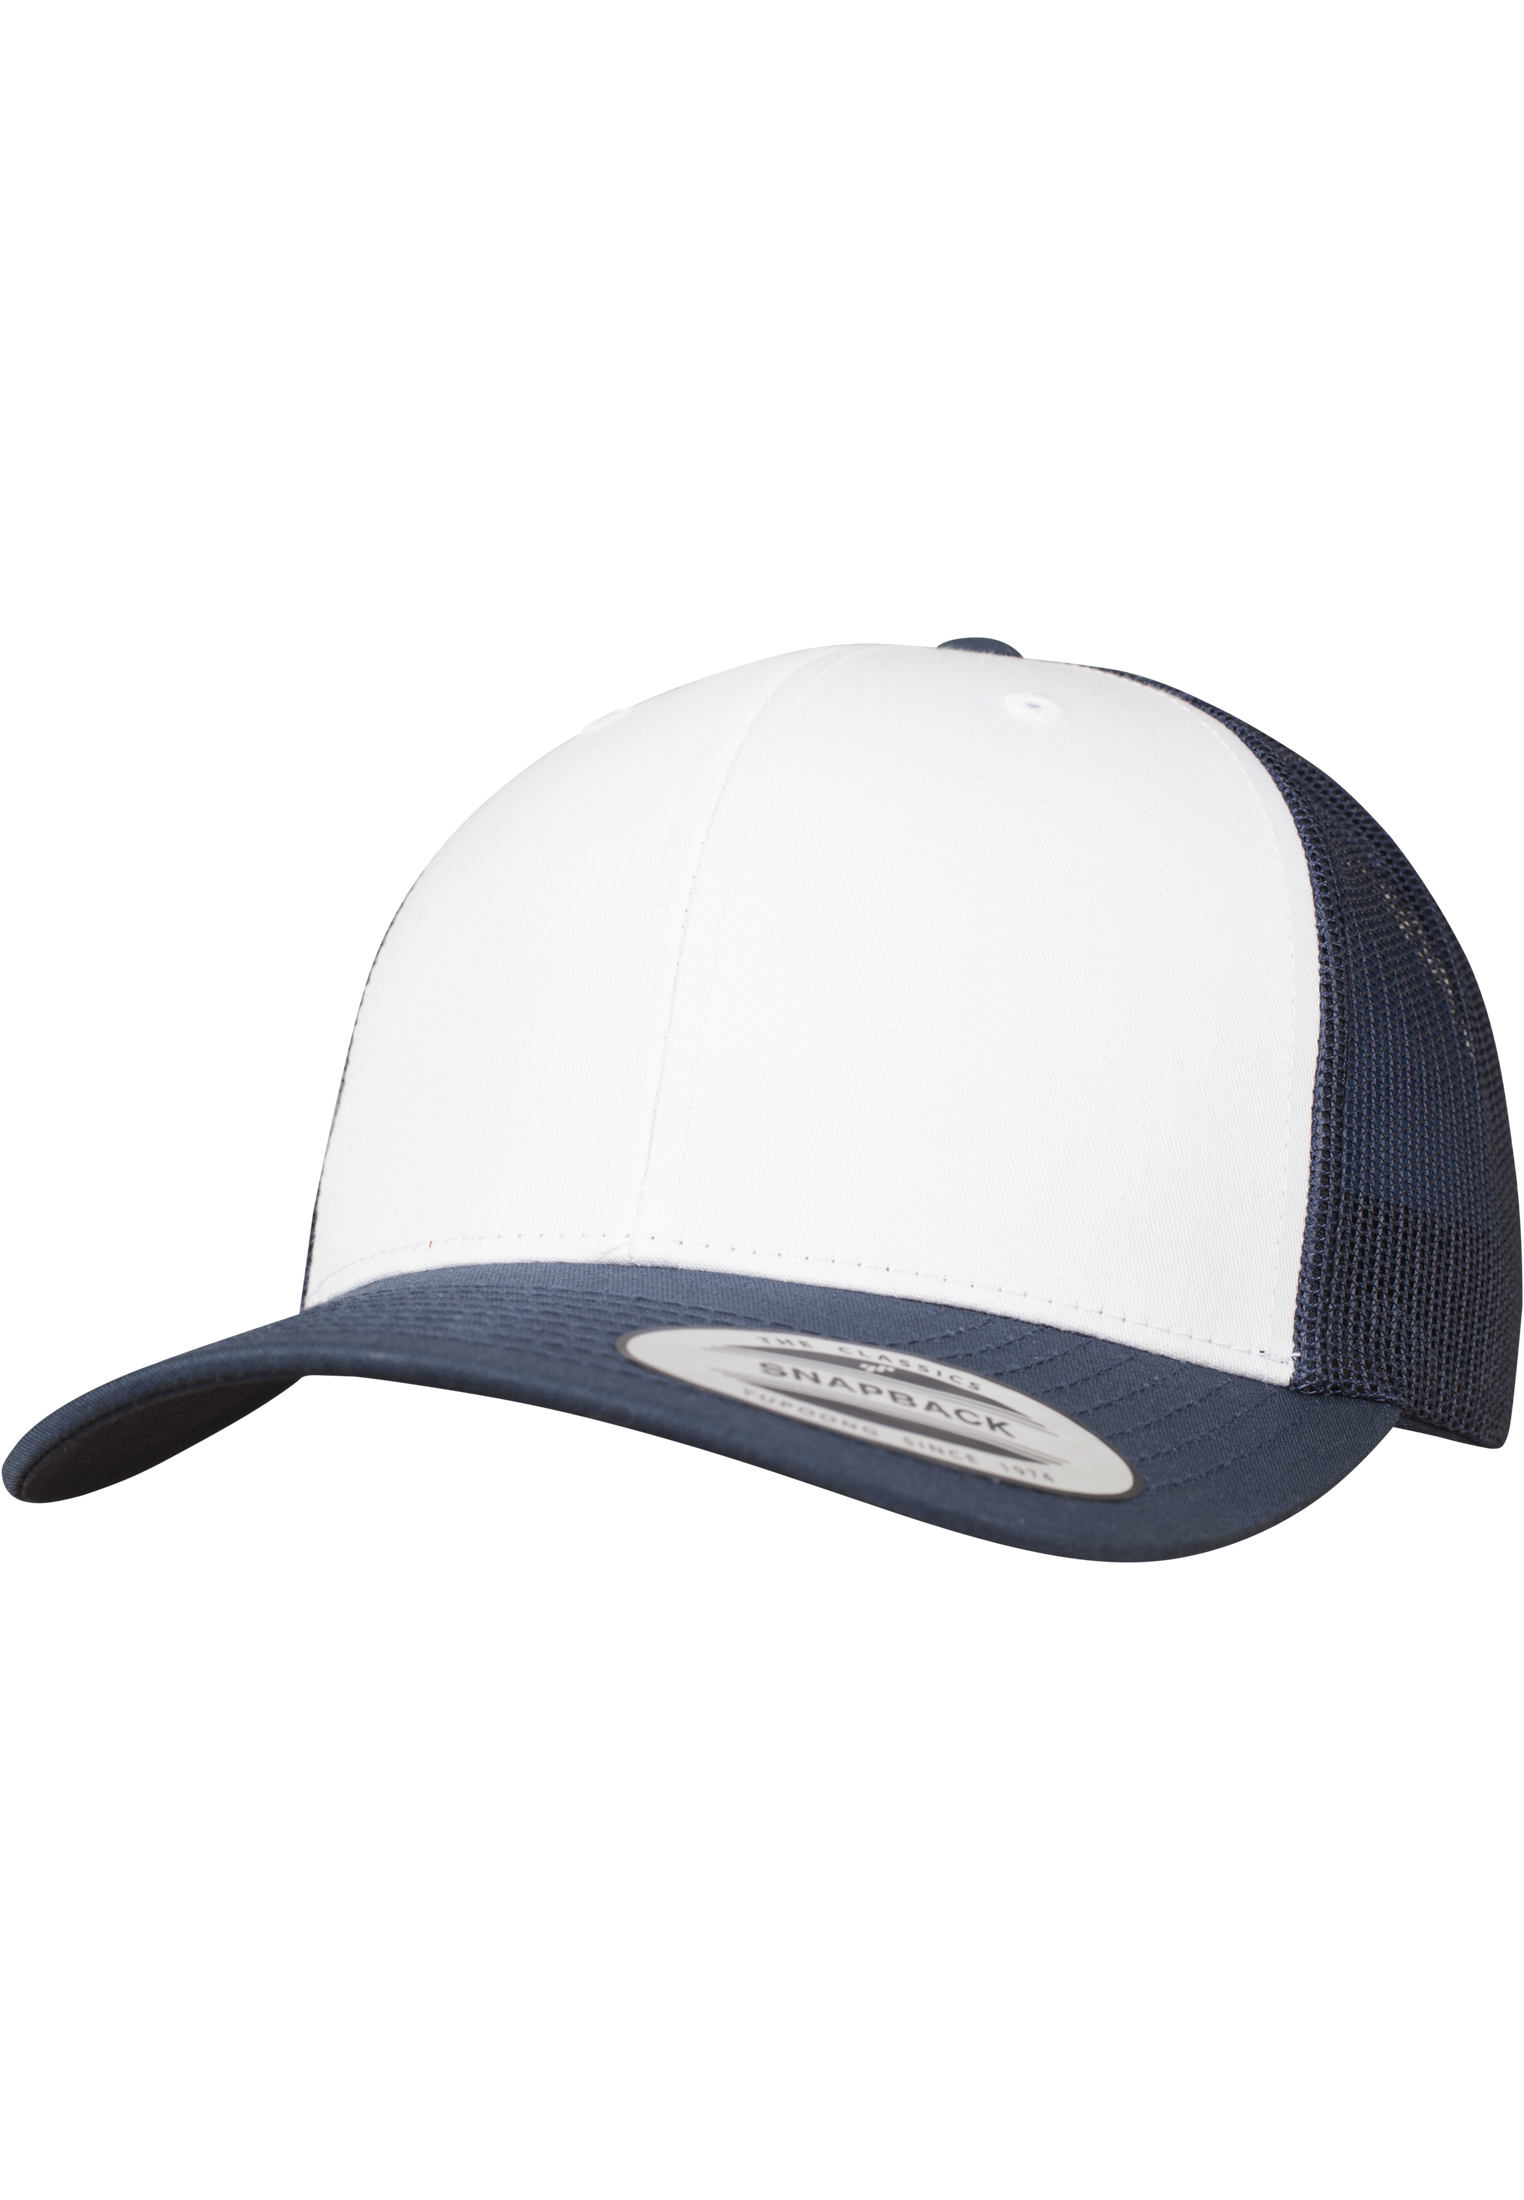 Flexfit Retro Trucker Colored Front Herren Truc...